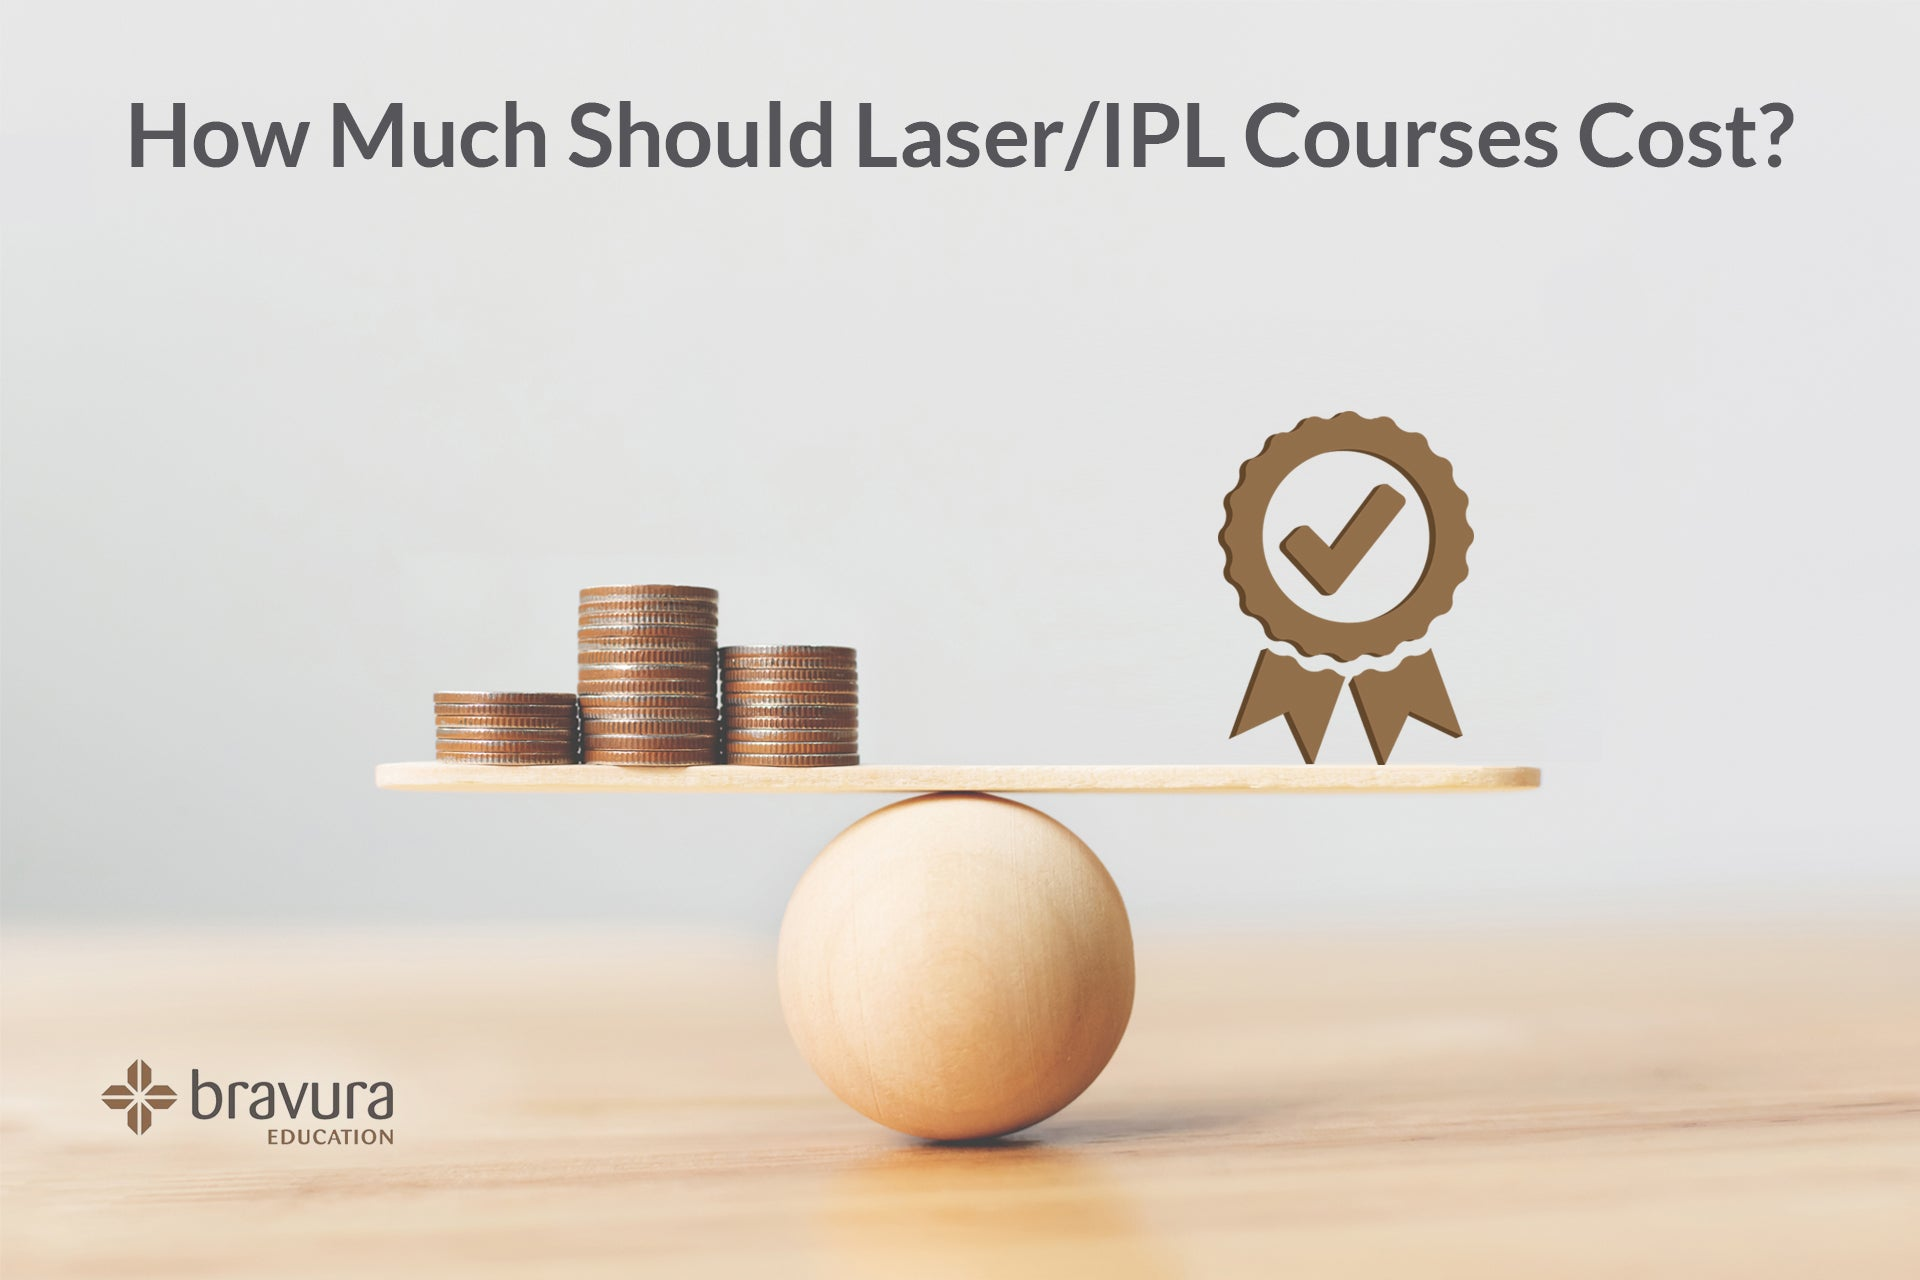 How Much Should Laser/IPL Courses Cost? 4 Steps to the Answer